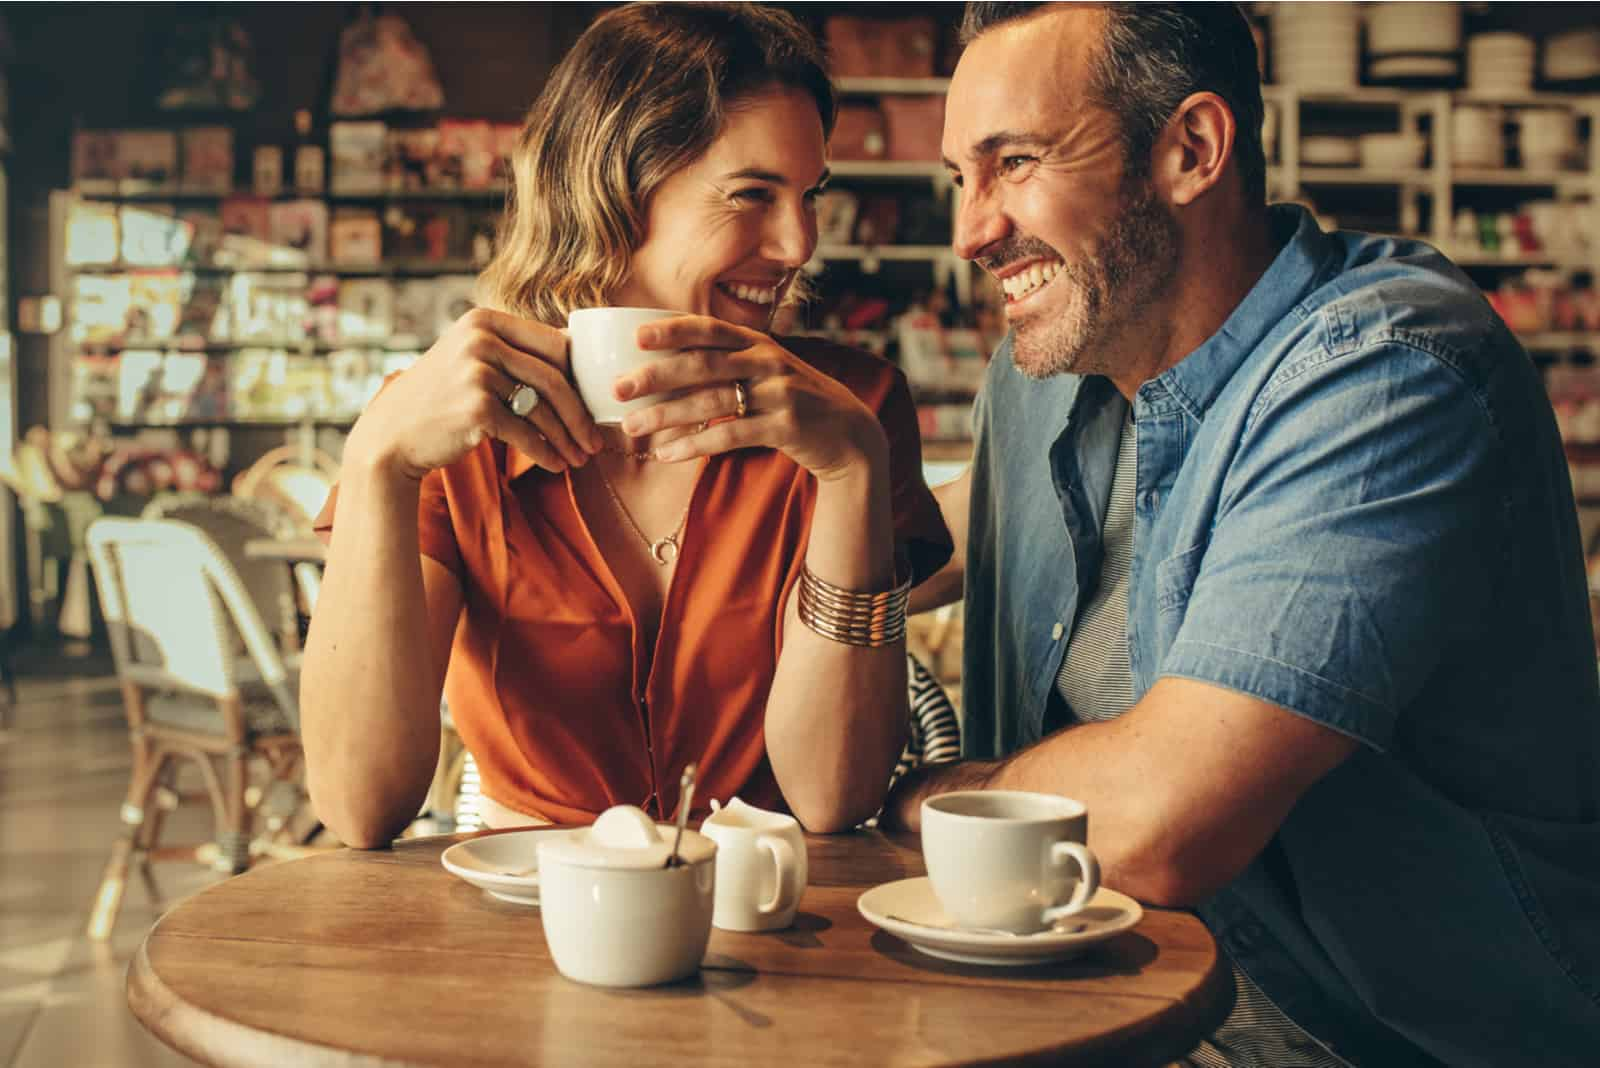 a smiling woman holding a cup of coffee laughs and looks at a man